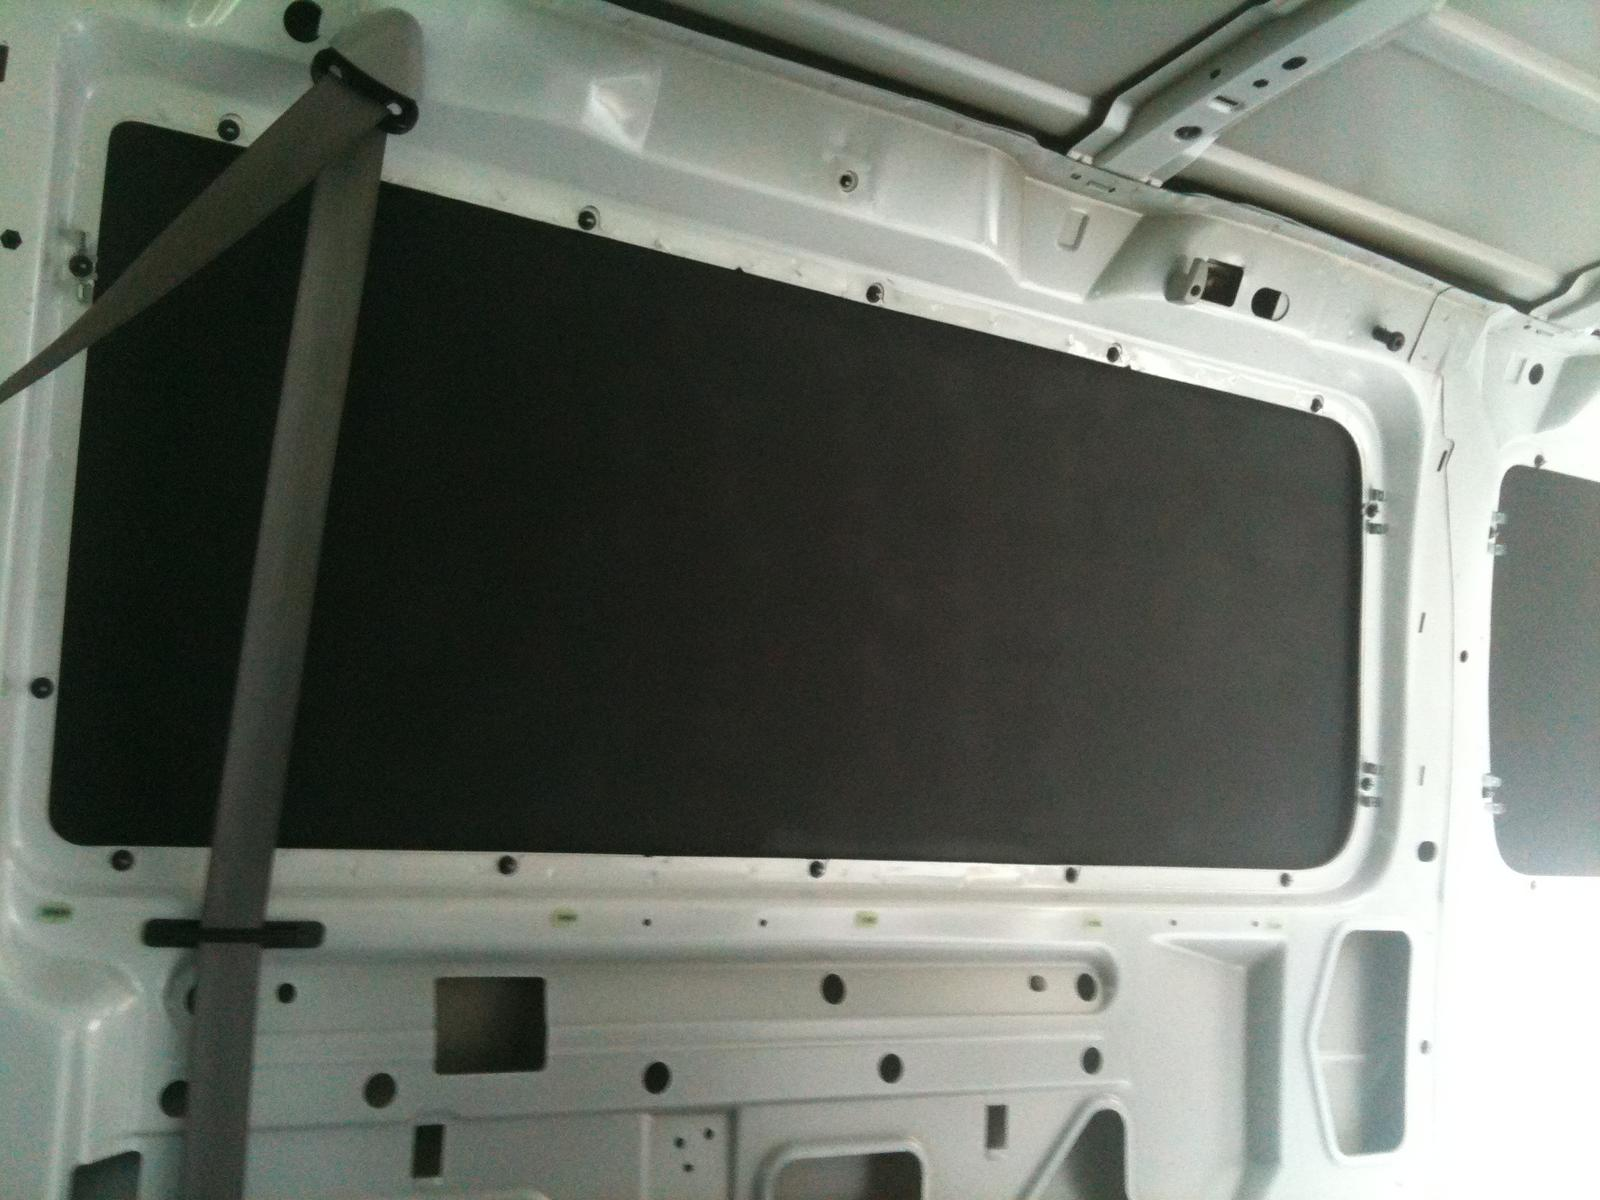 Share your project moto van pictures here south bay riders for All window replacements